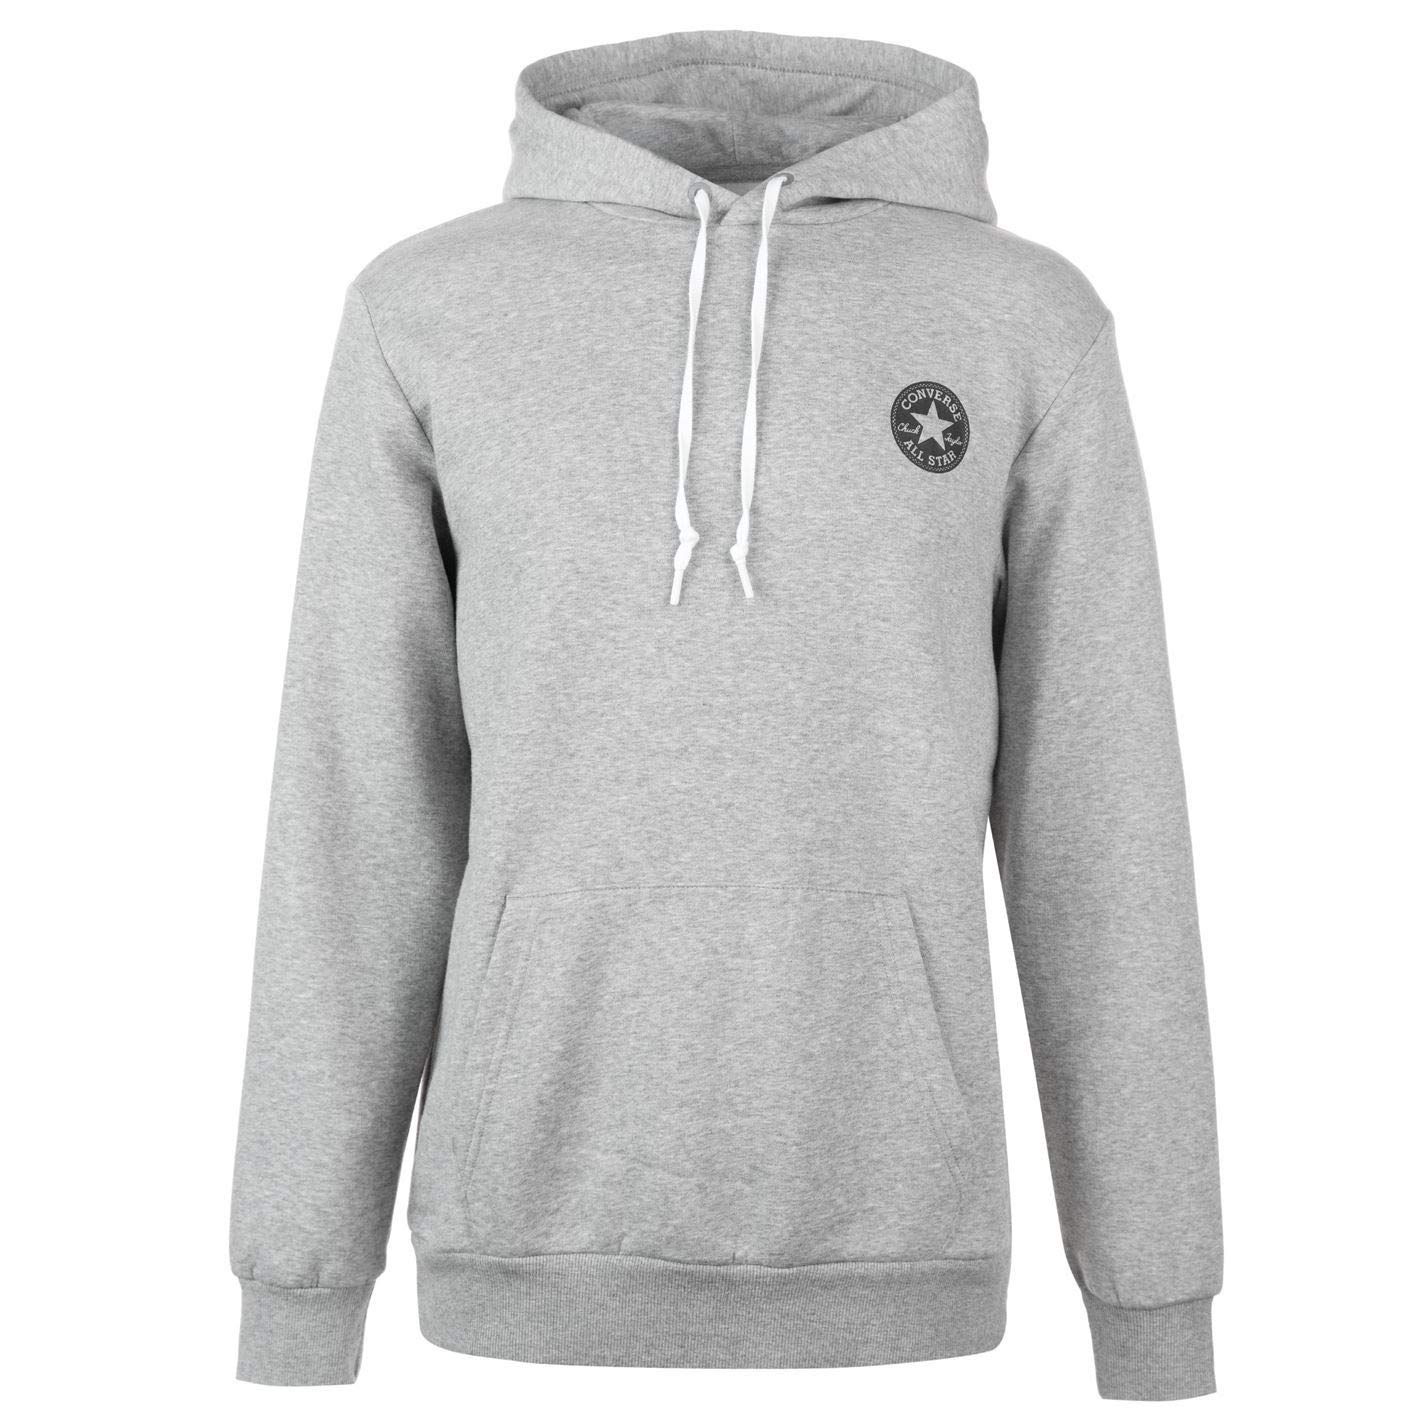 Official Converse All Star Chuck Taylor Pullover Hoody Mens OTH Hoodie Sweatshirt Sweater